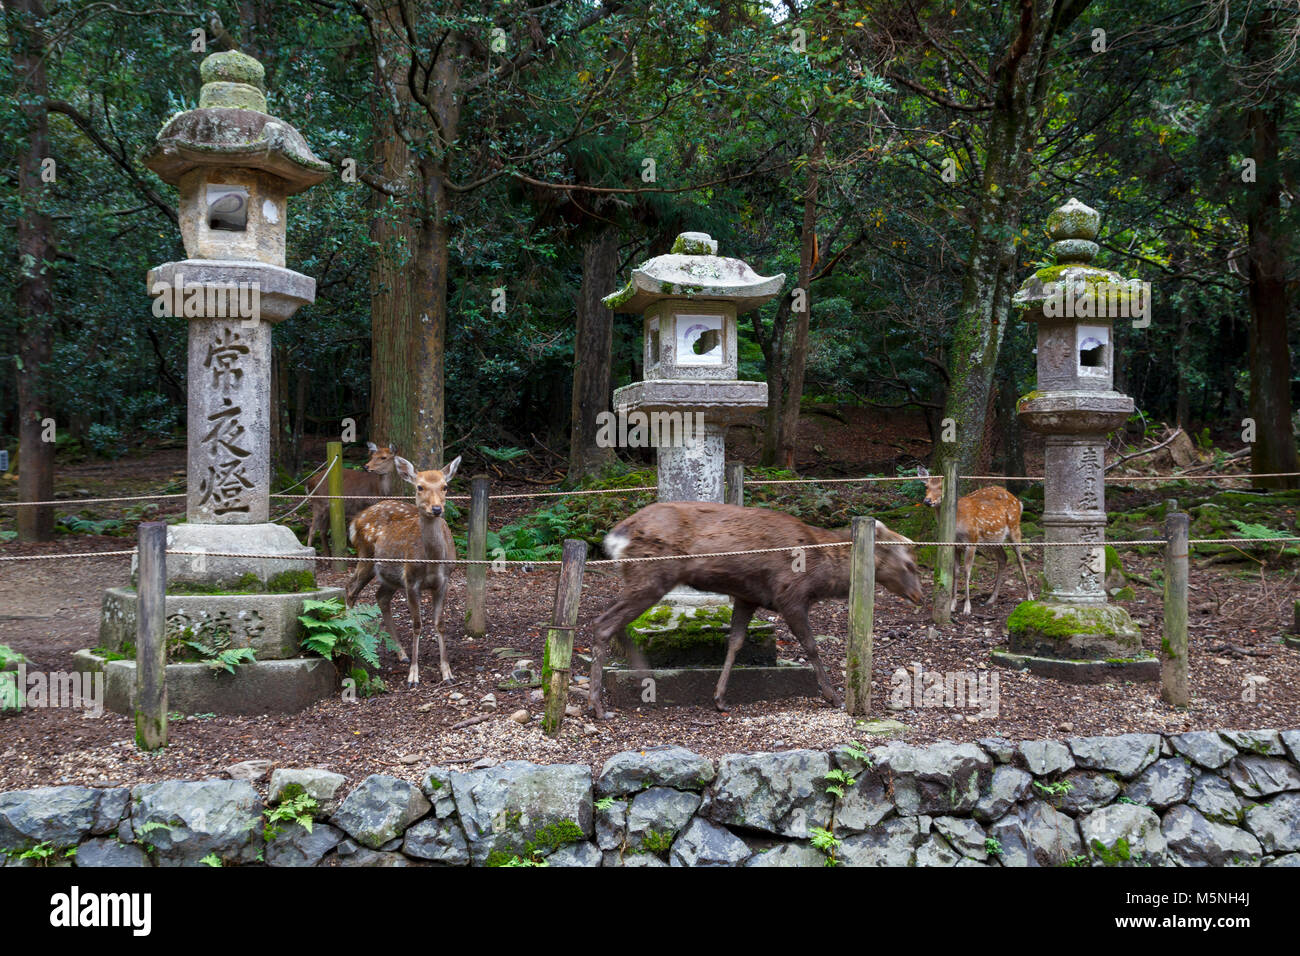 Stone lanterns and deers in Kasuga Taisha Shrine in Nara, Japan - Stock Image